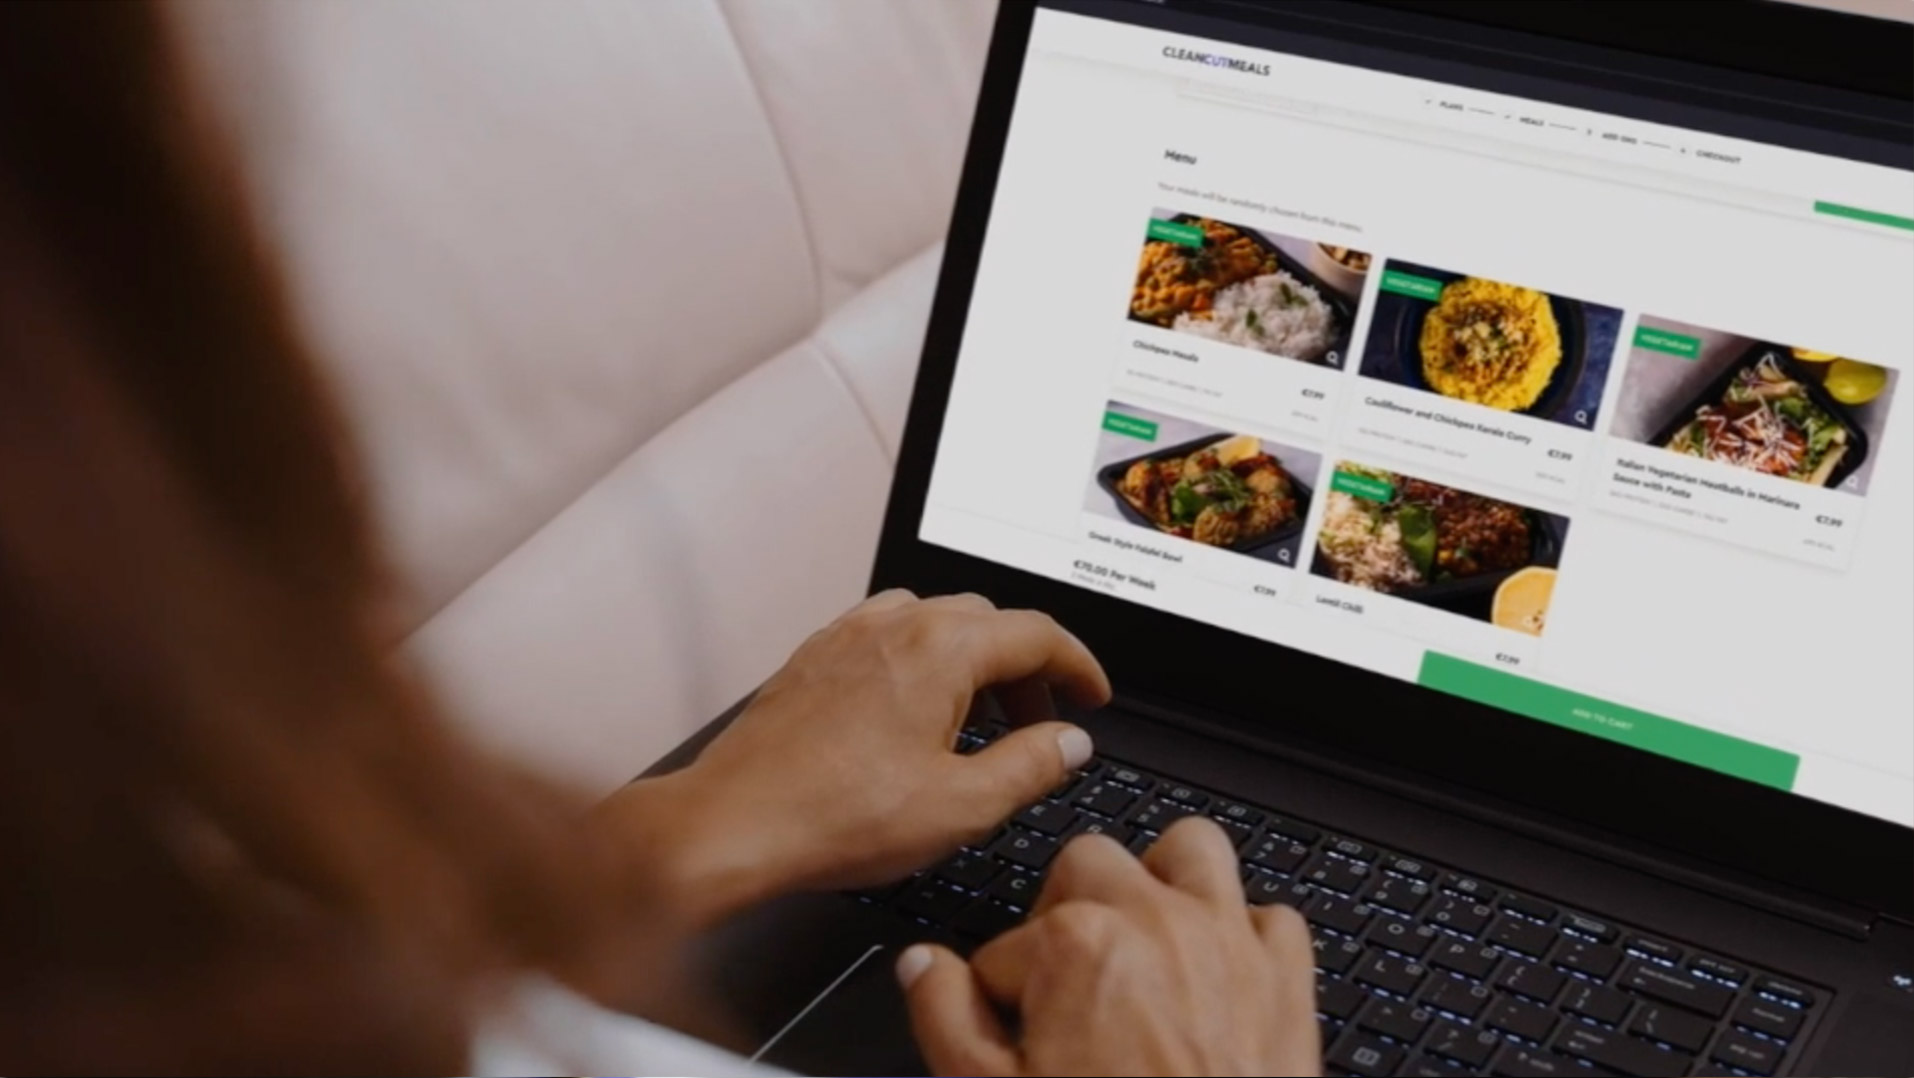 Customer ordering premade meals from the clean cut meals website